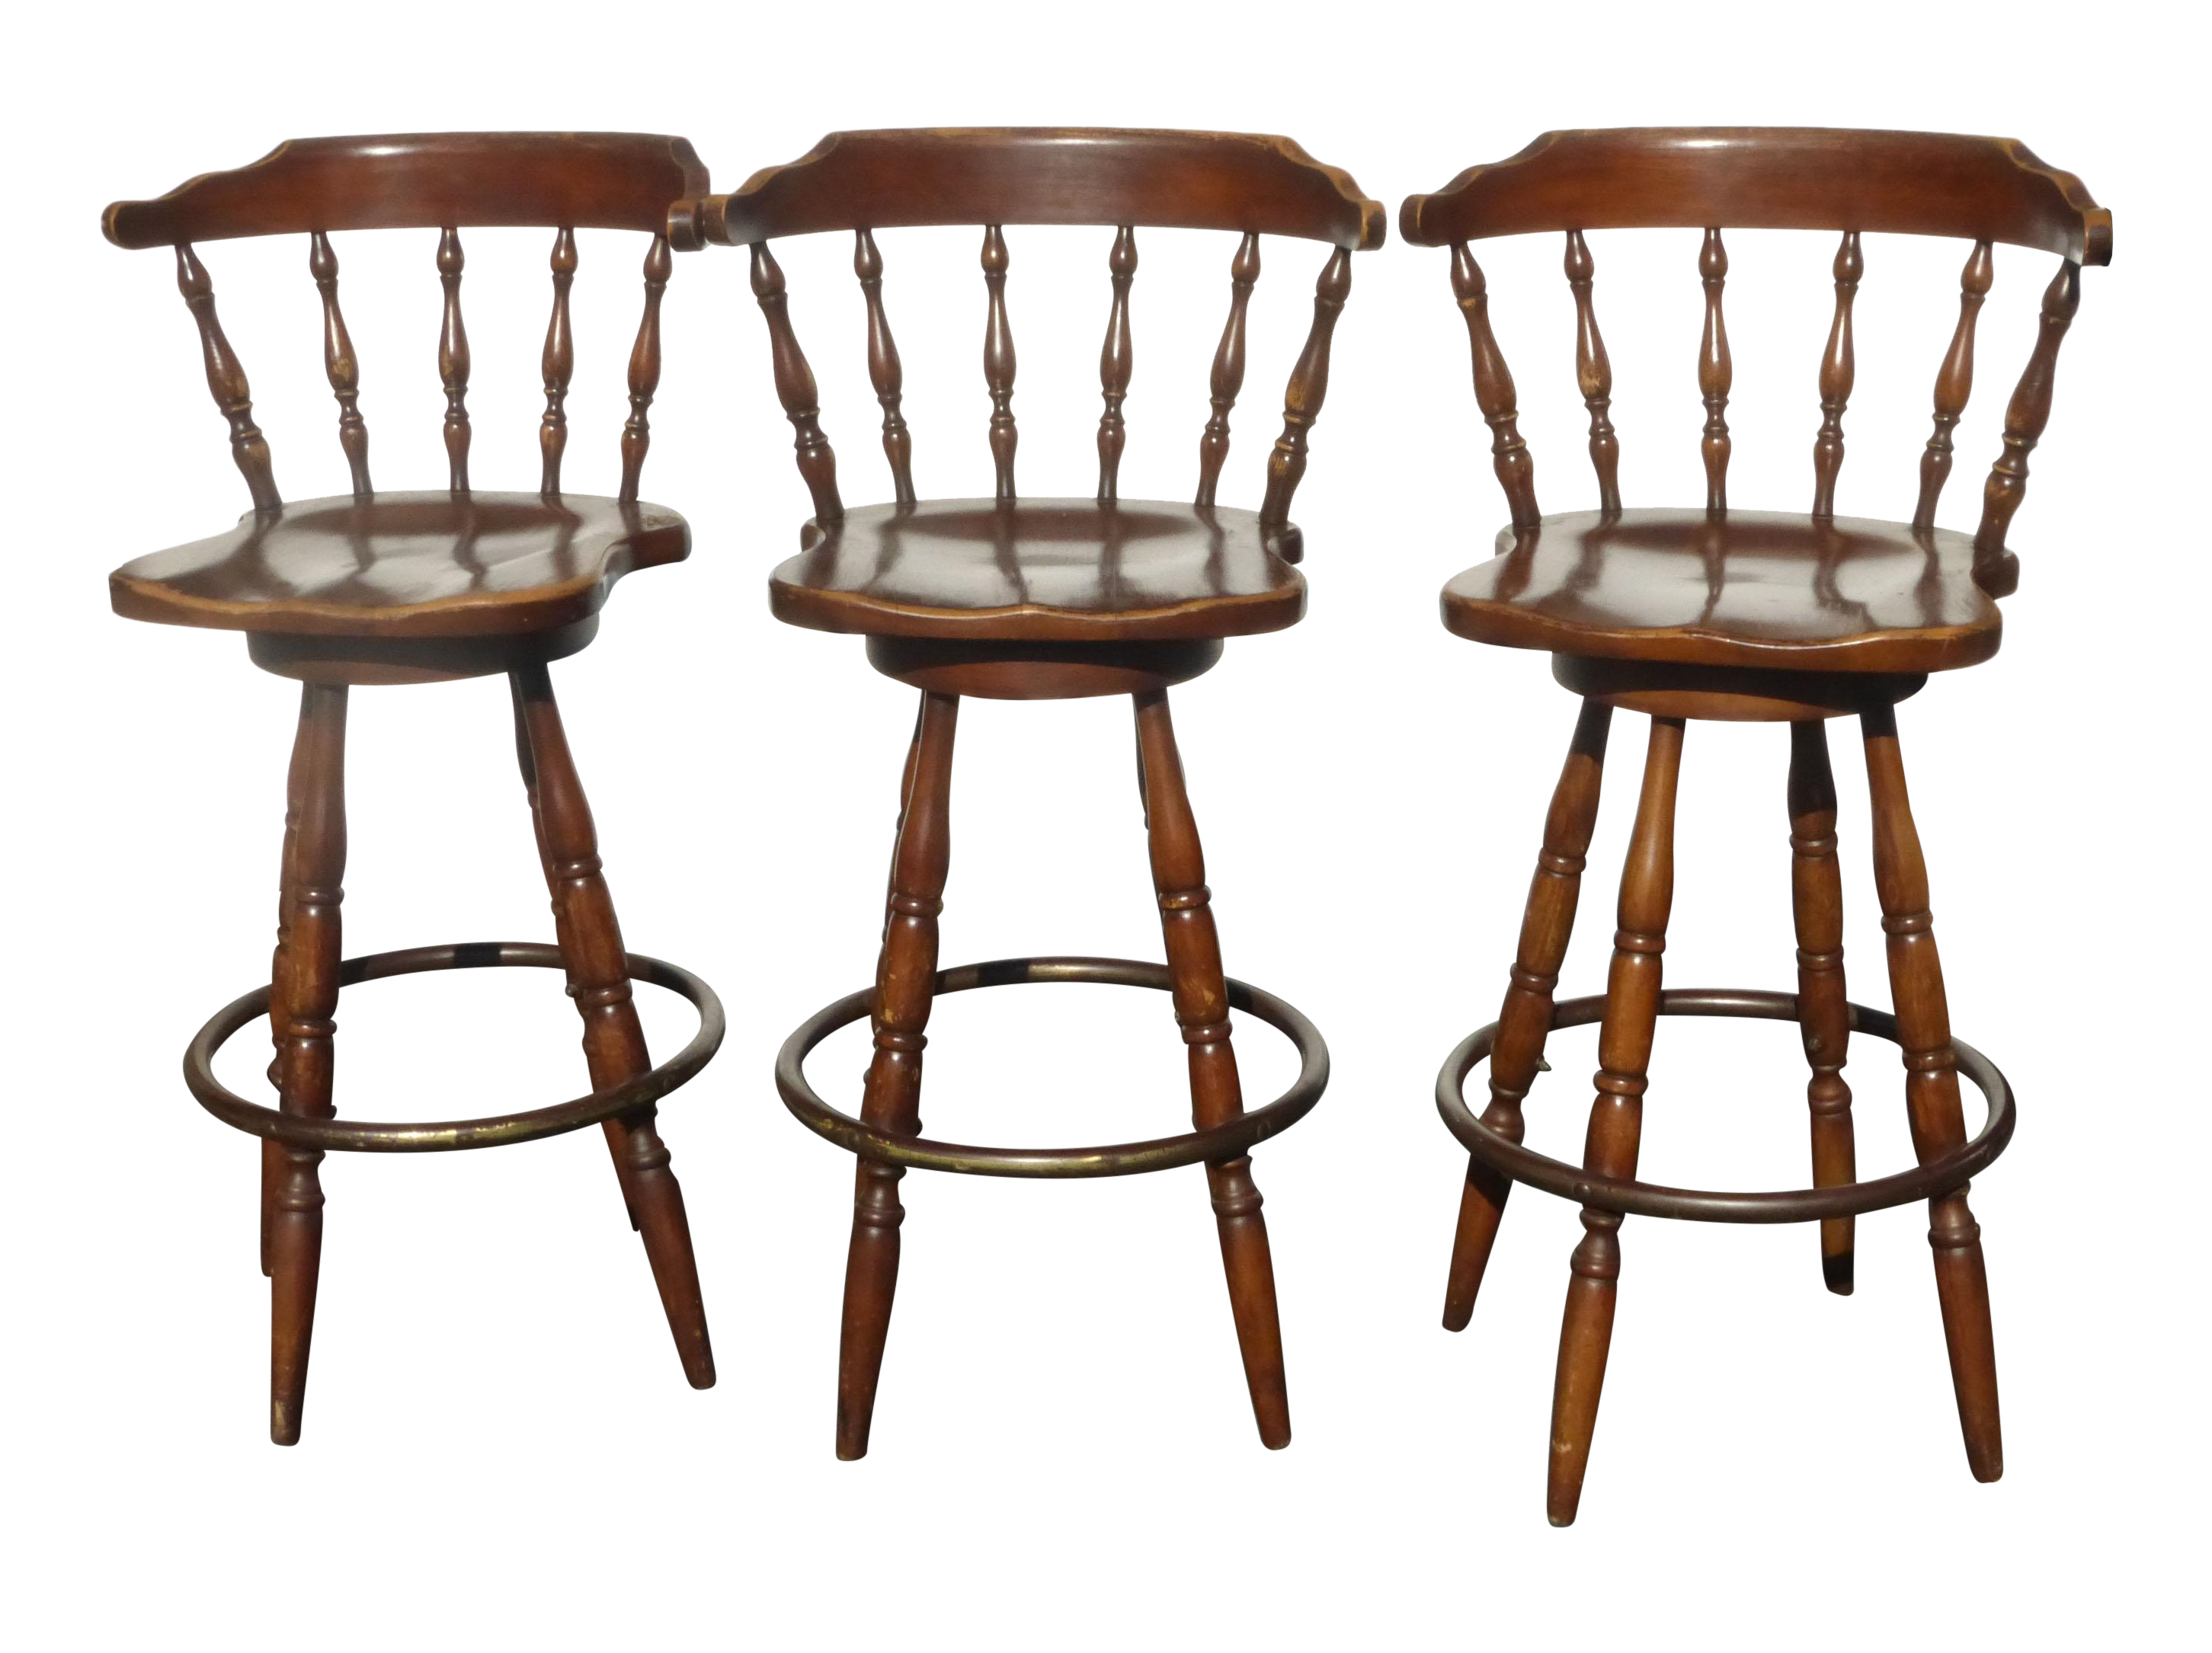 wooden swivel bar stools French Country Wood Swivel Bar Stools   Set of 3 | Chairish wooden swivel bar stools